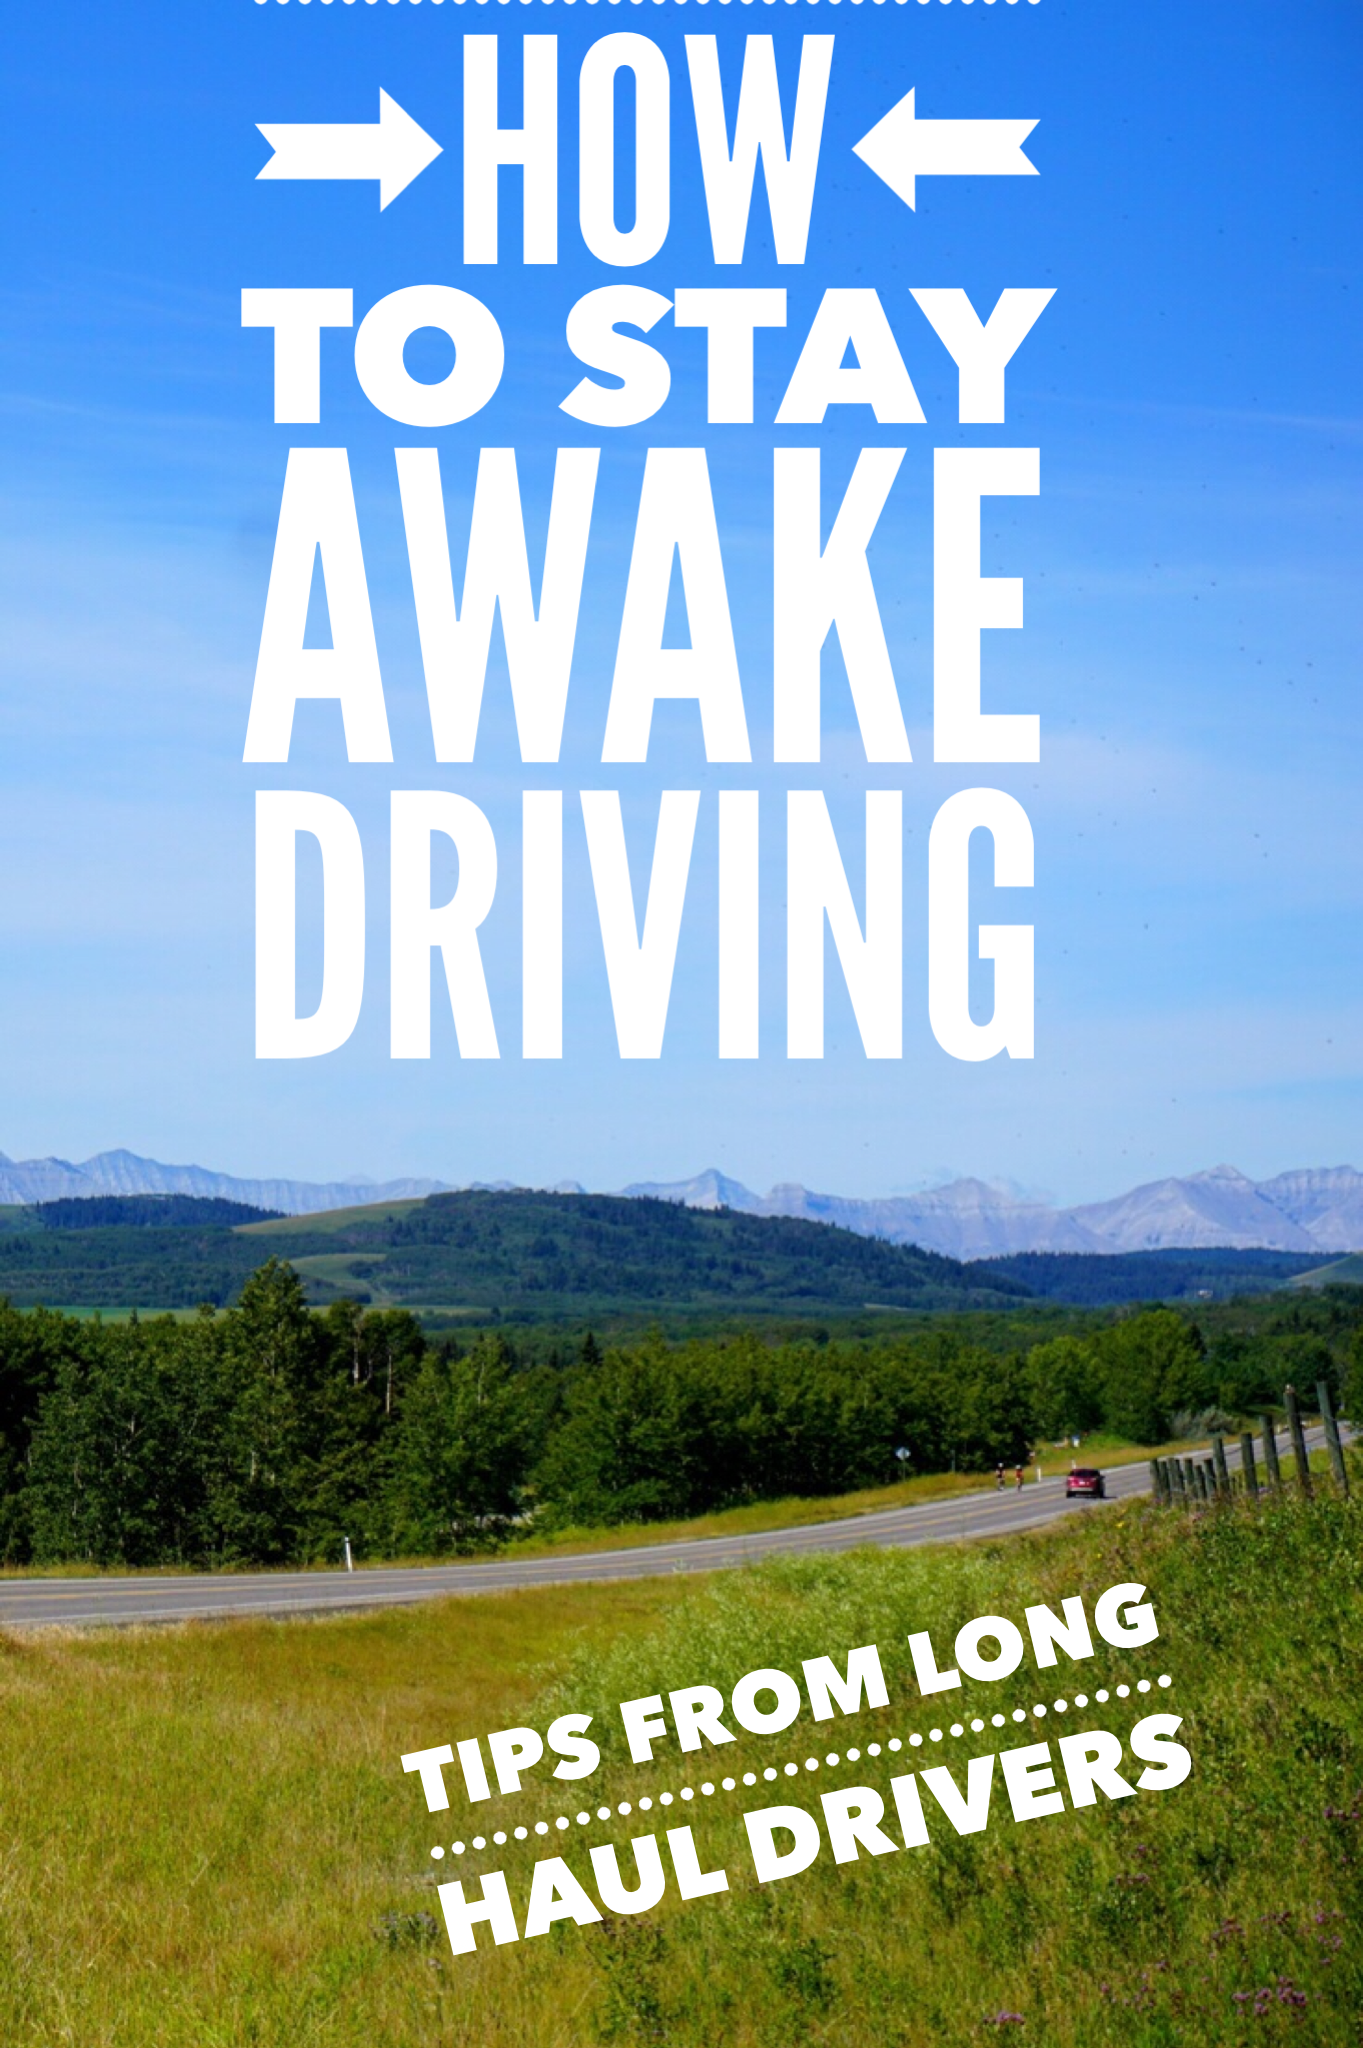 Ways To Stay Awake Classy 20 Tips To Stay Awake Driving  Ways To Stay Alert  Road Trips .